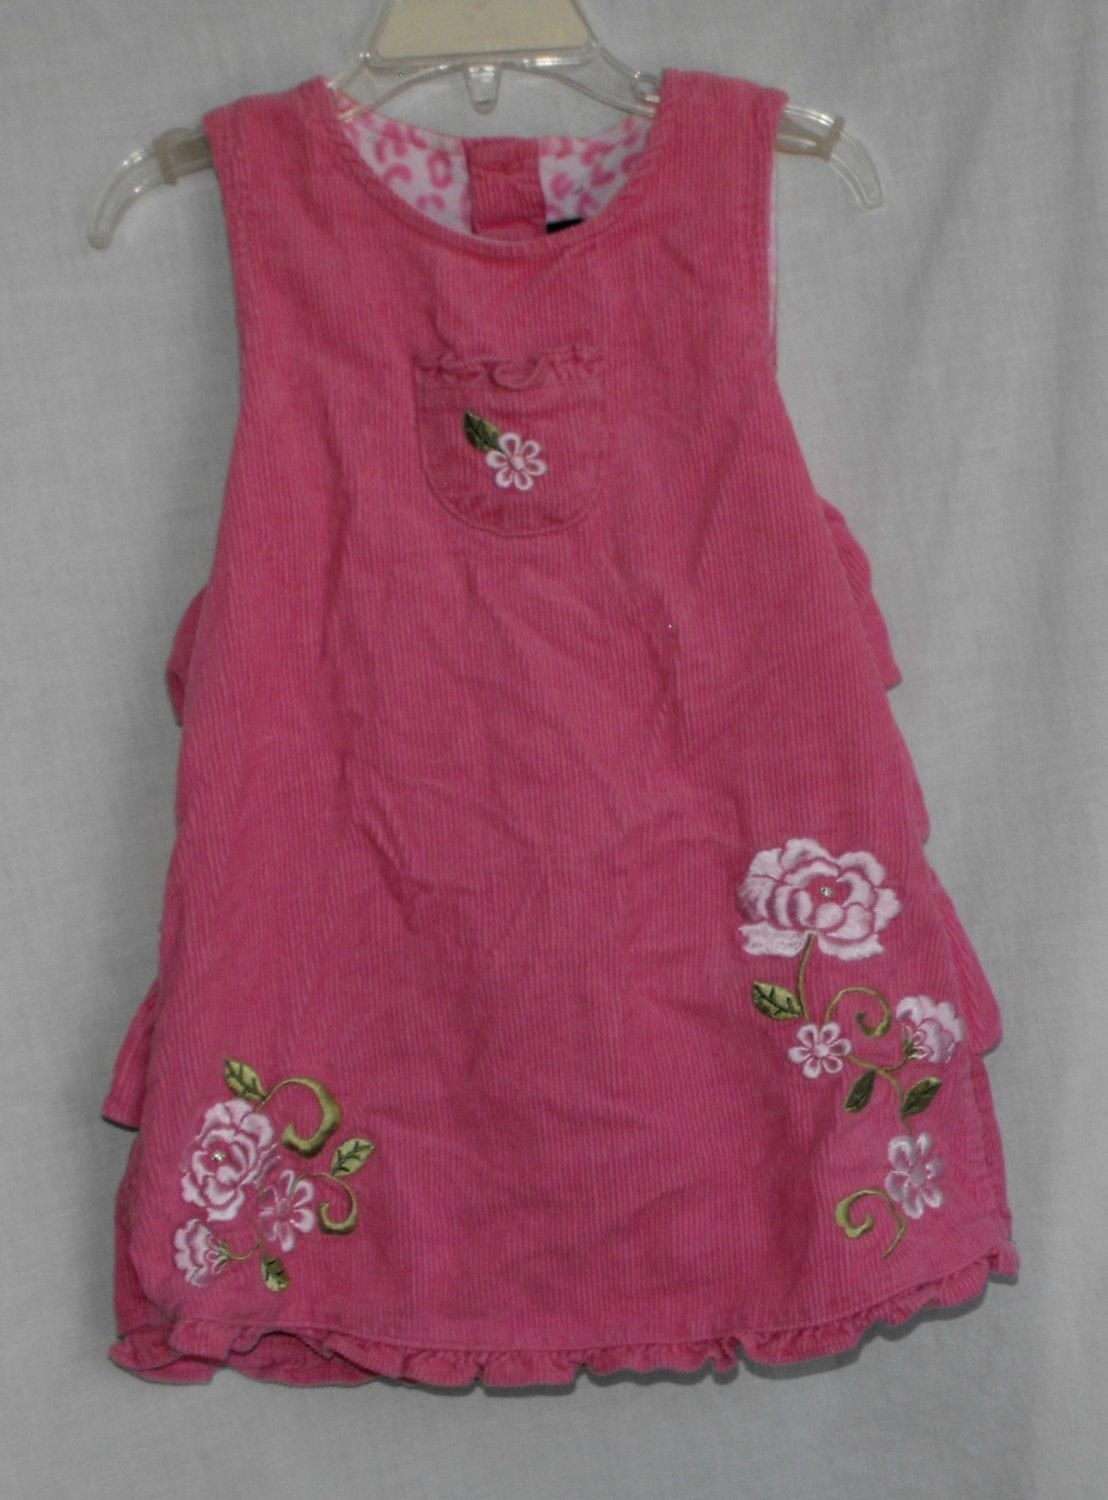 The Children's Place Pink Corduroy Dress Bloomers 3T New